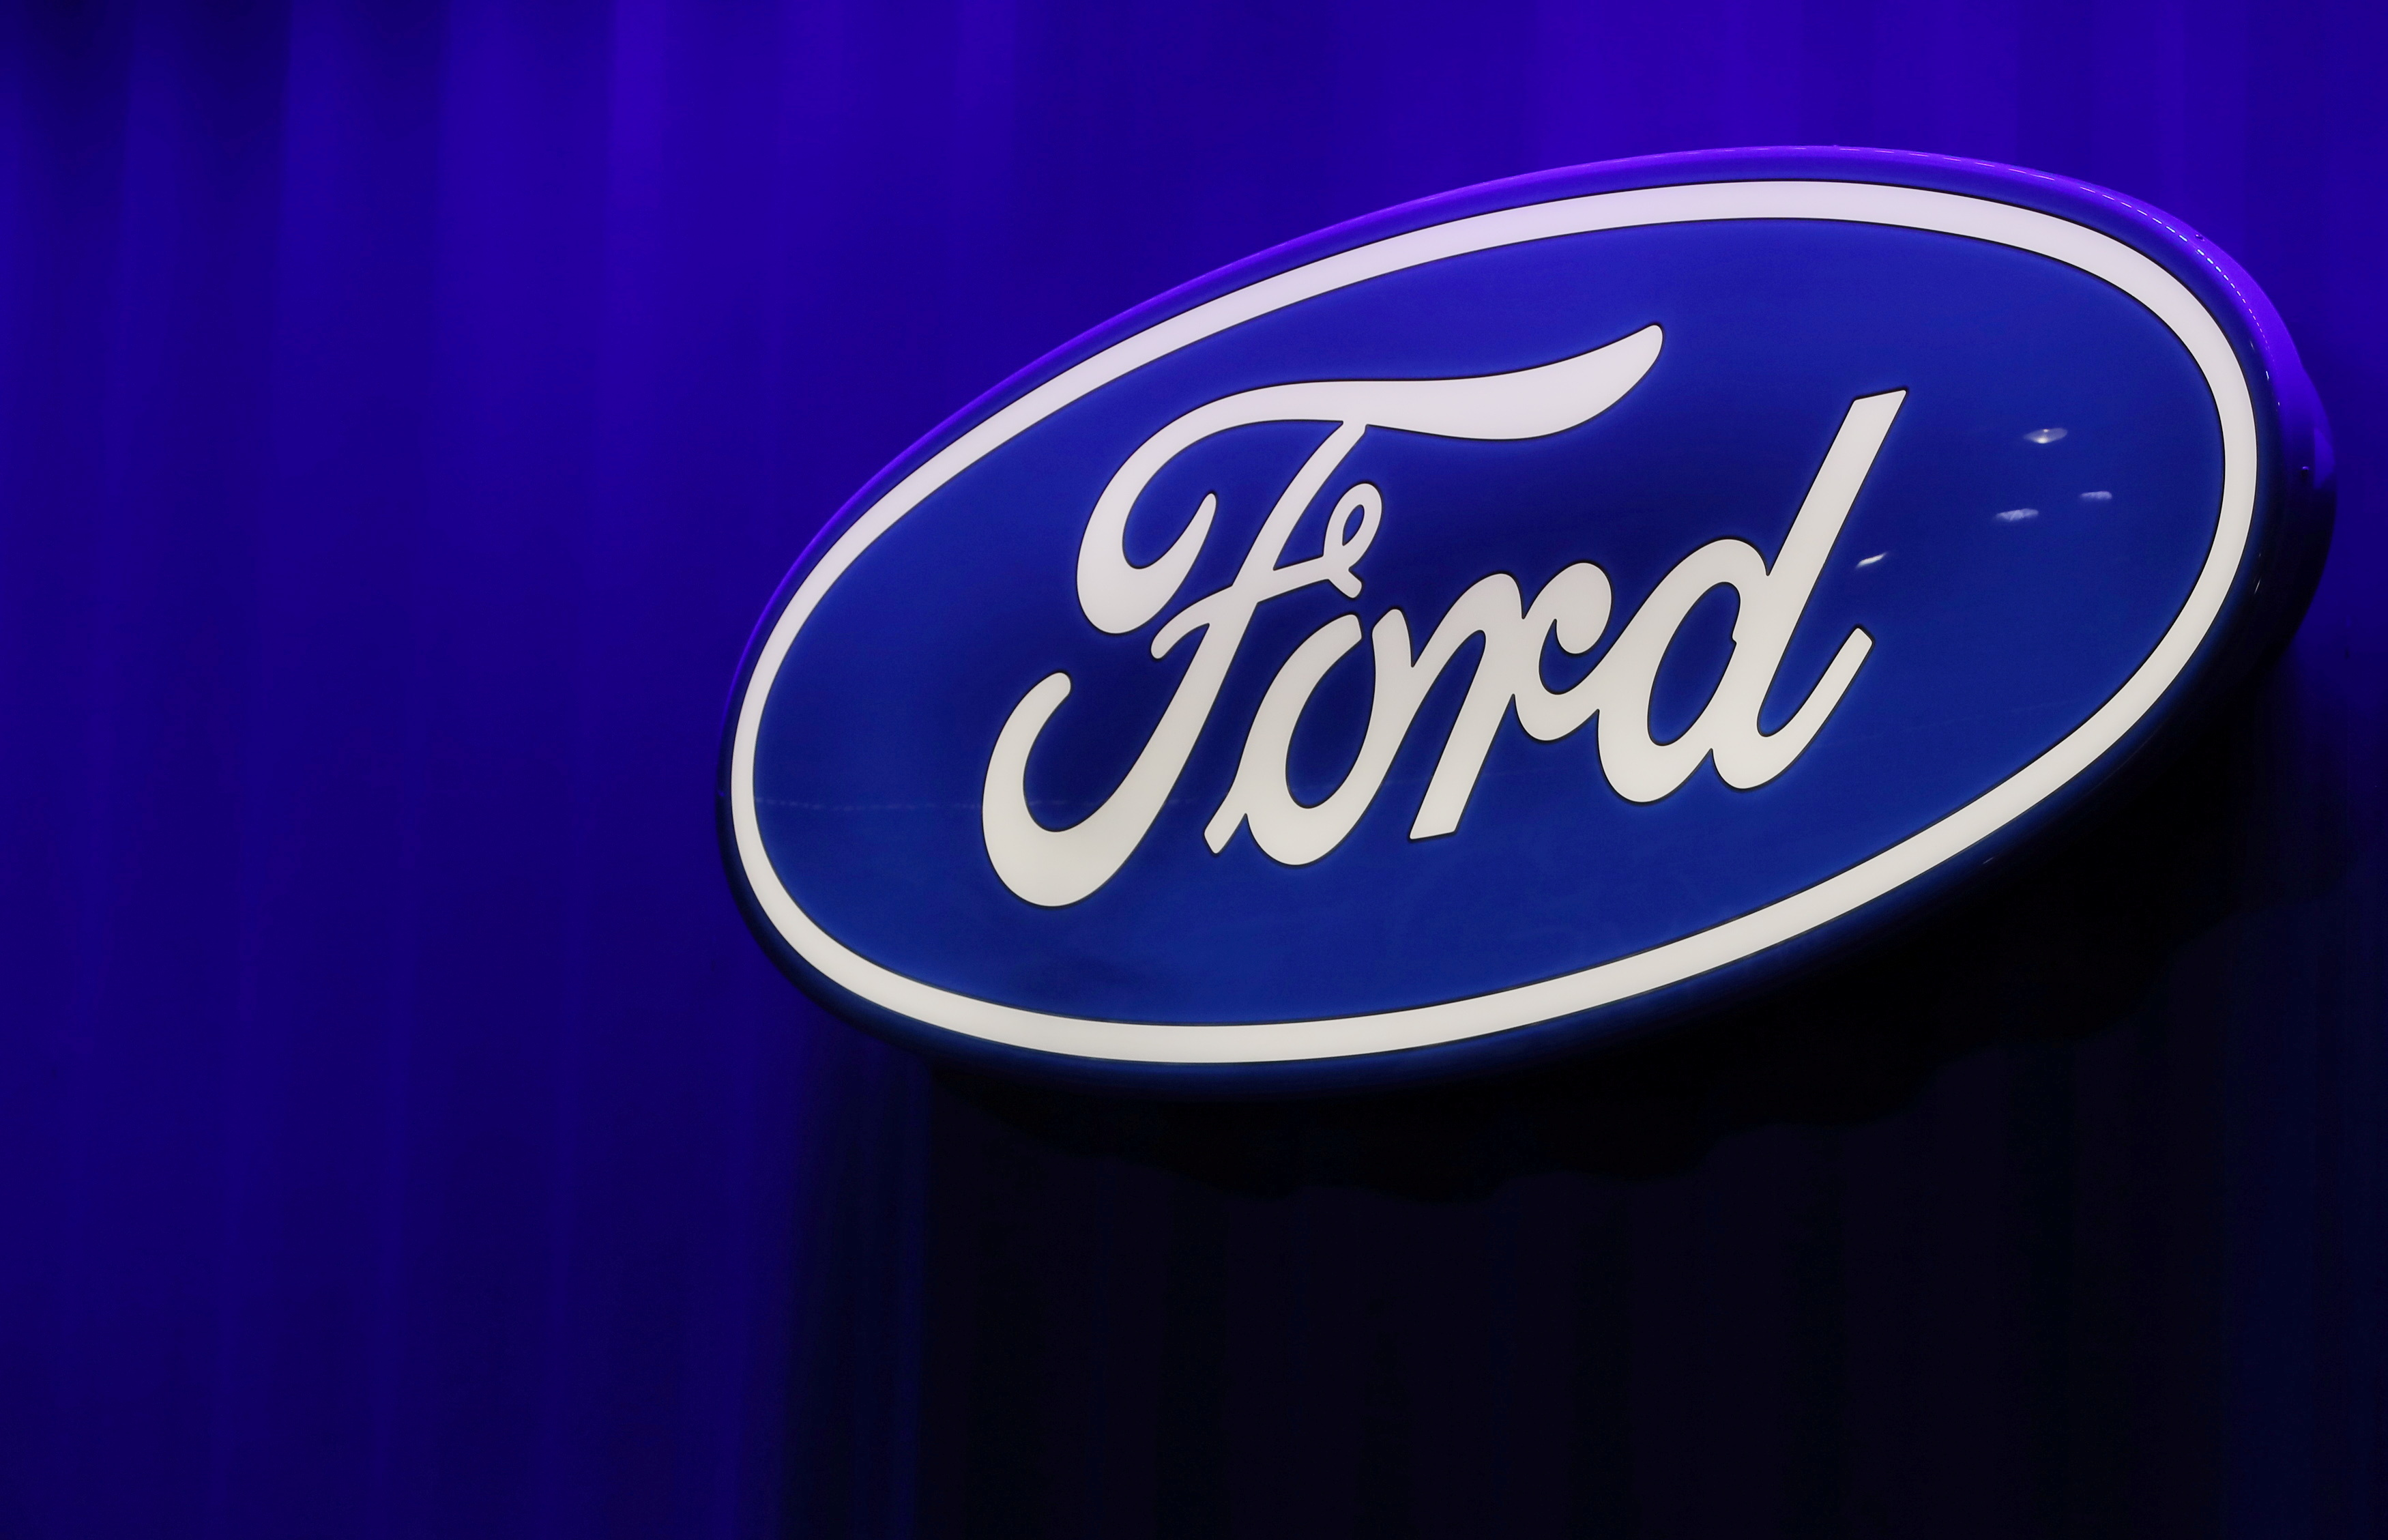 The Ford logo is seen at the North American International Auto Show in Detroit, Michigan, U.S., January 15, 2019. REUTERS/Brendan McDermid/File Photo